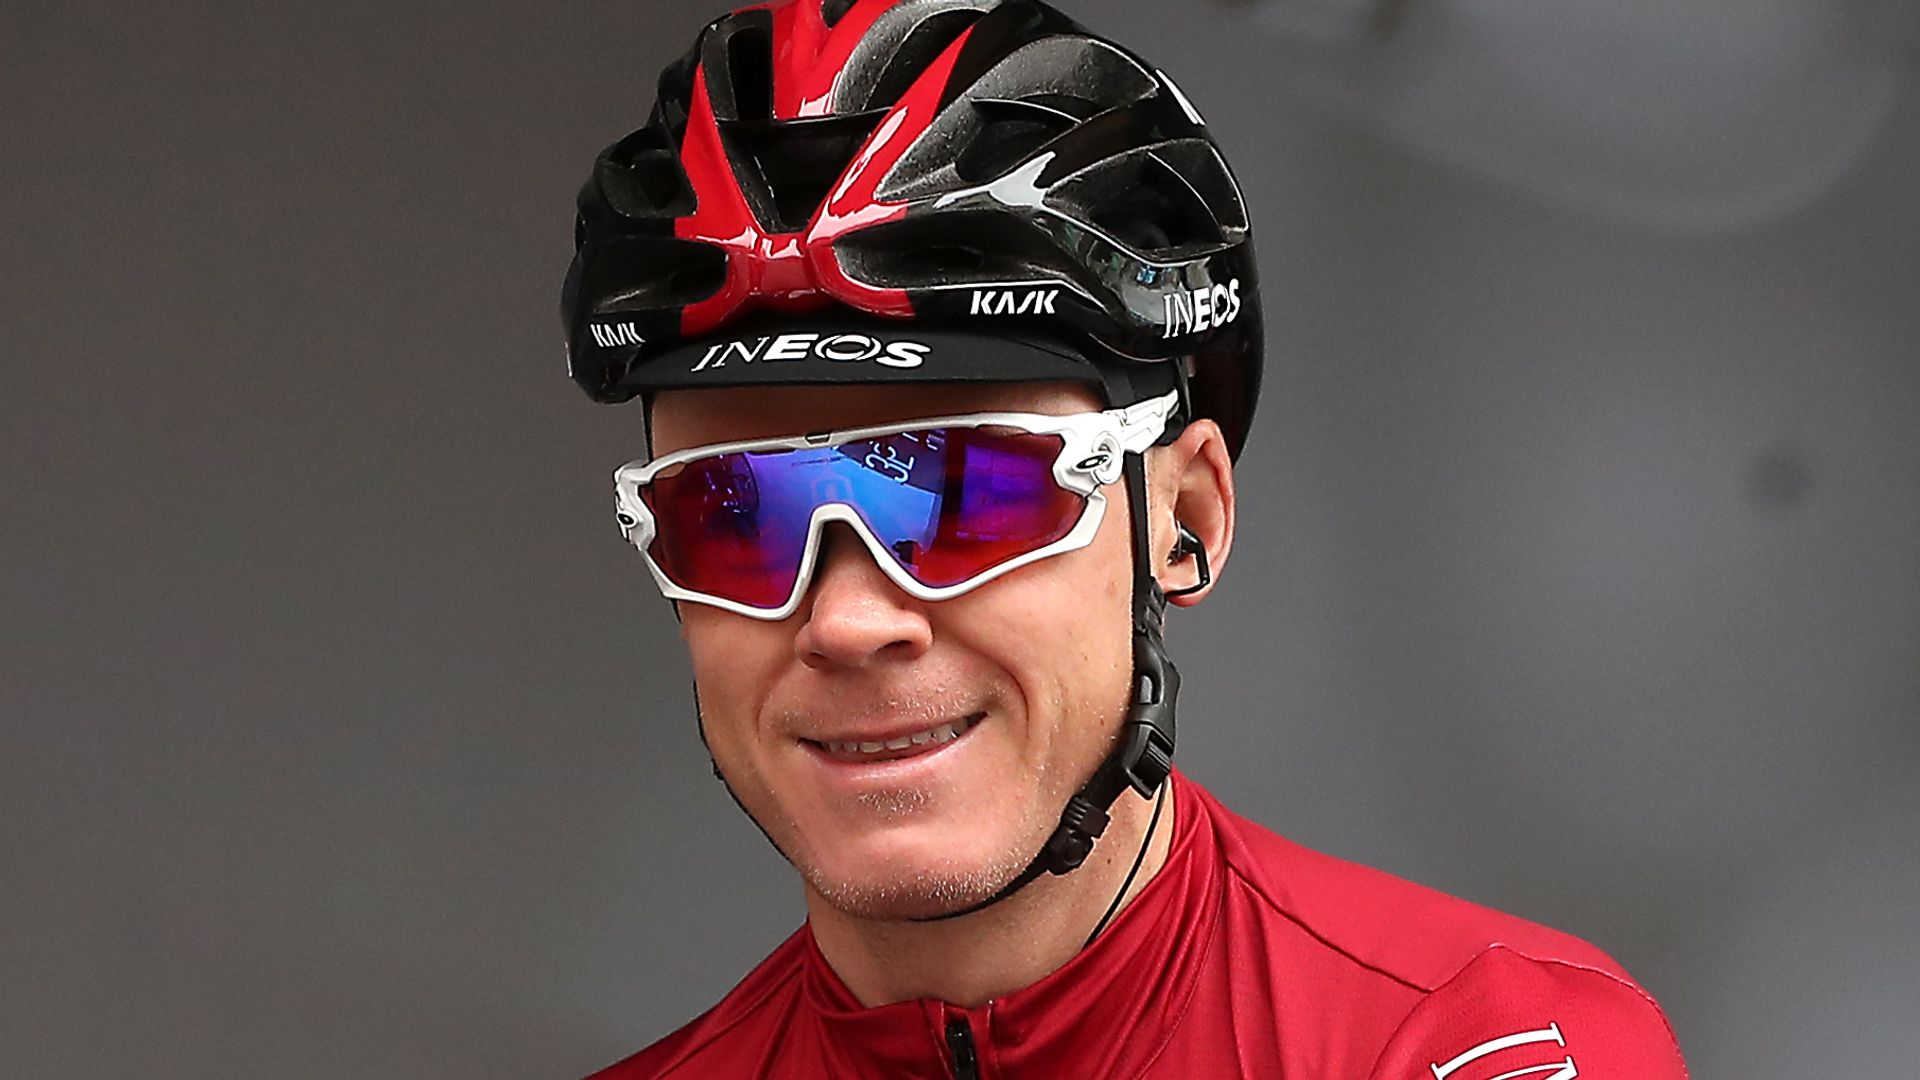 Froome: I'll be with Israel Start-Up Nation for rest of career